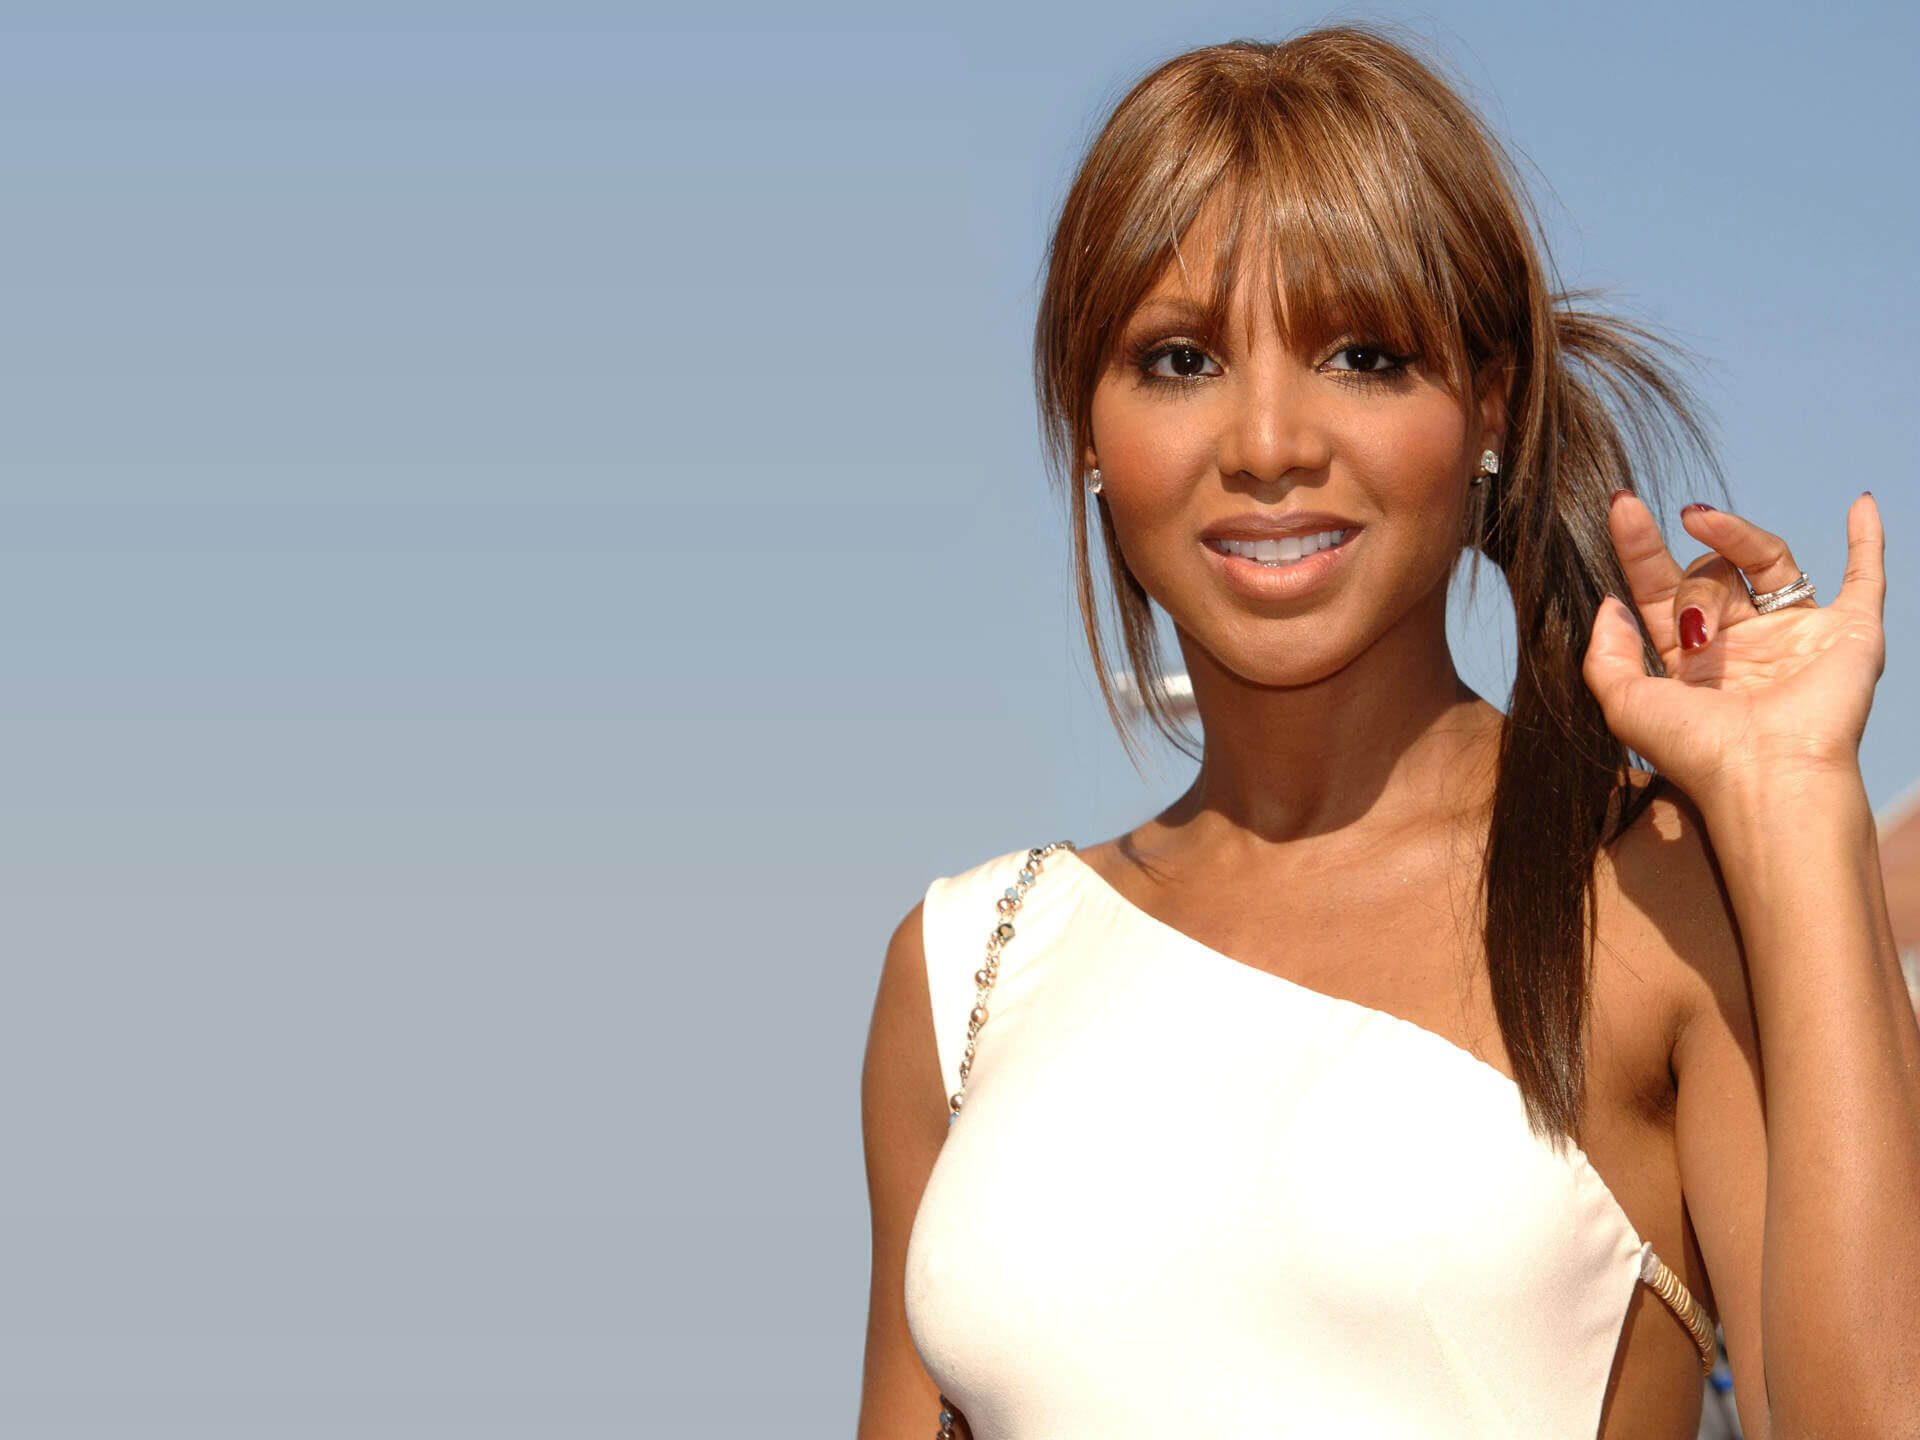 Toni Braxton Celebrates A Musical Achievement And Offers Her Gratitude